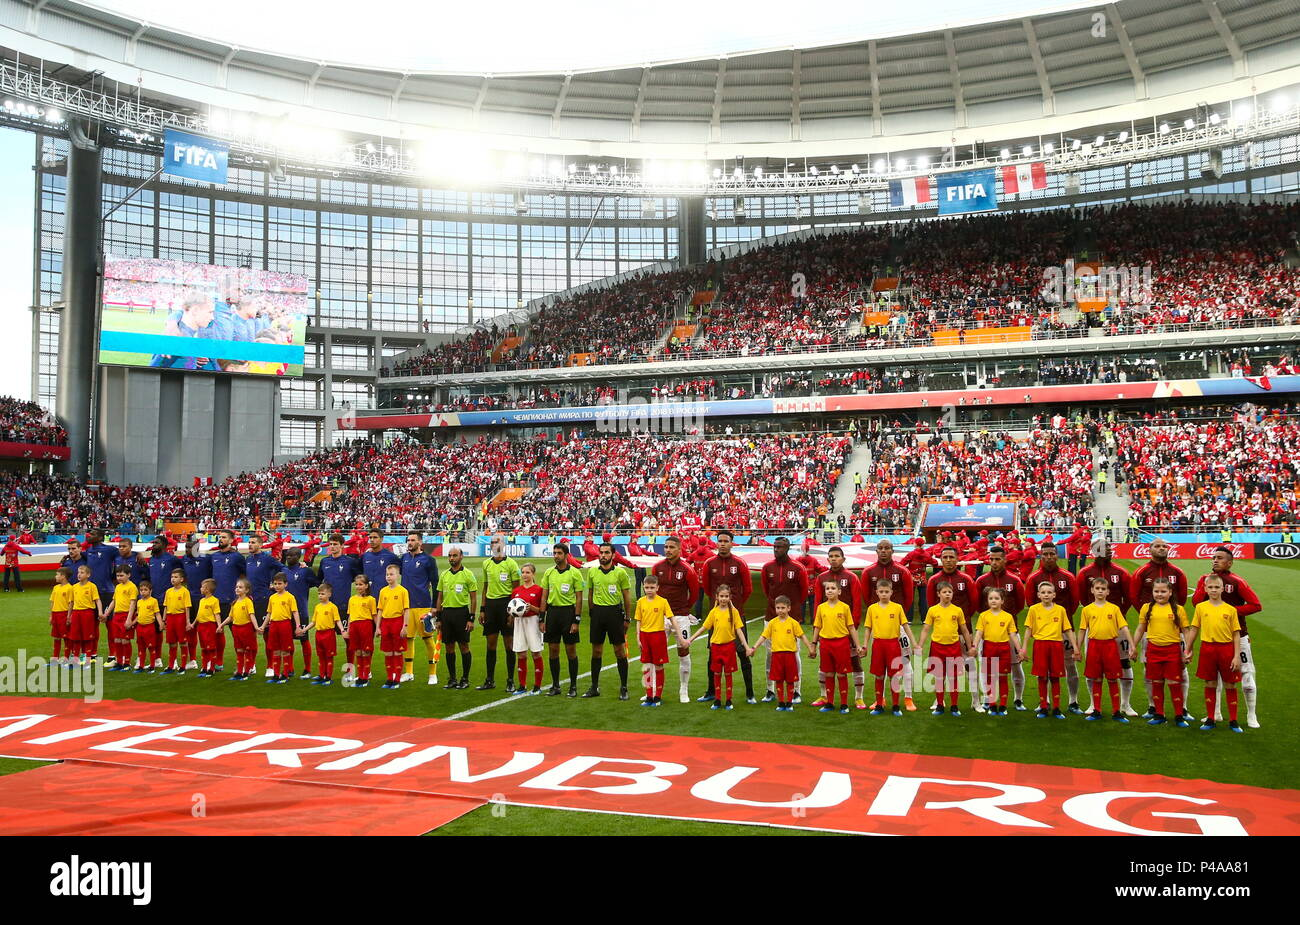 Yekaterinburg, Russia. 21st June, 2018. YEKATERINBURG, RUSSIA - JUNE 21, 2018: Players of France and Peru ahead of their 2018 FIFA World Cup Group C Round 2 football match at Yekaterinburg Arena. Valery Sharifulin/TASS Credit: ITAR-TASS News Agency/Alamy Live News Stock Photo